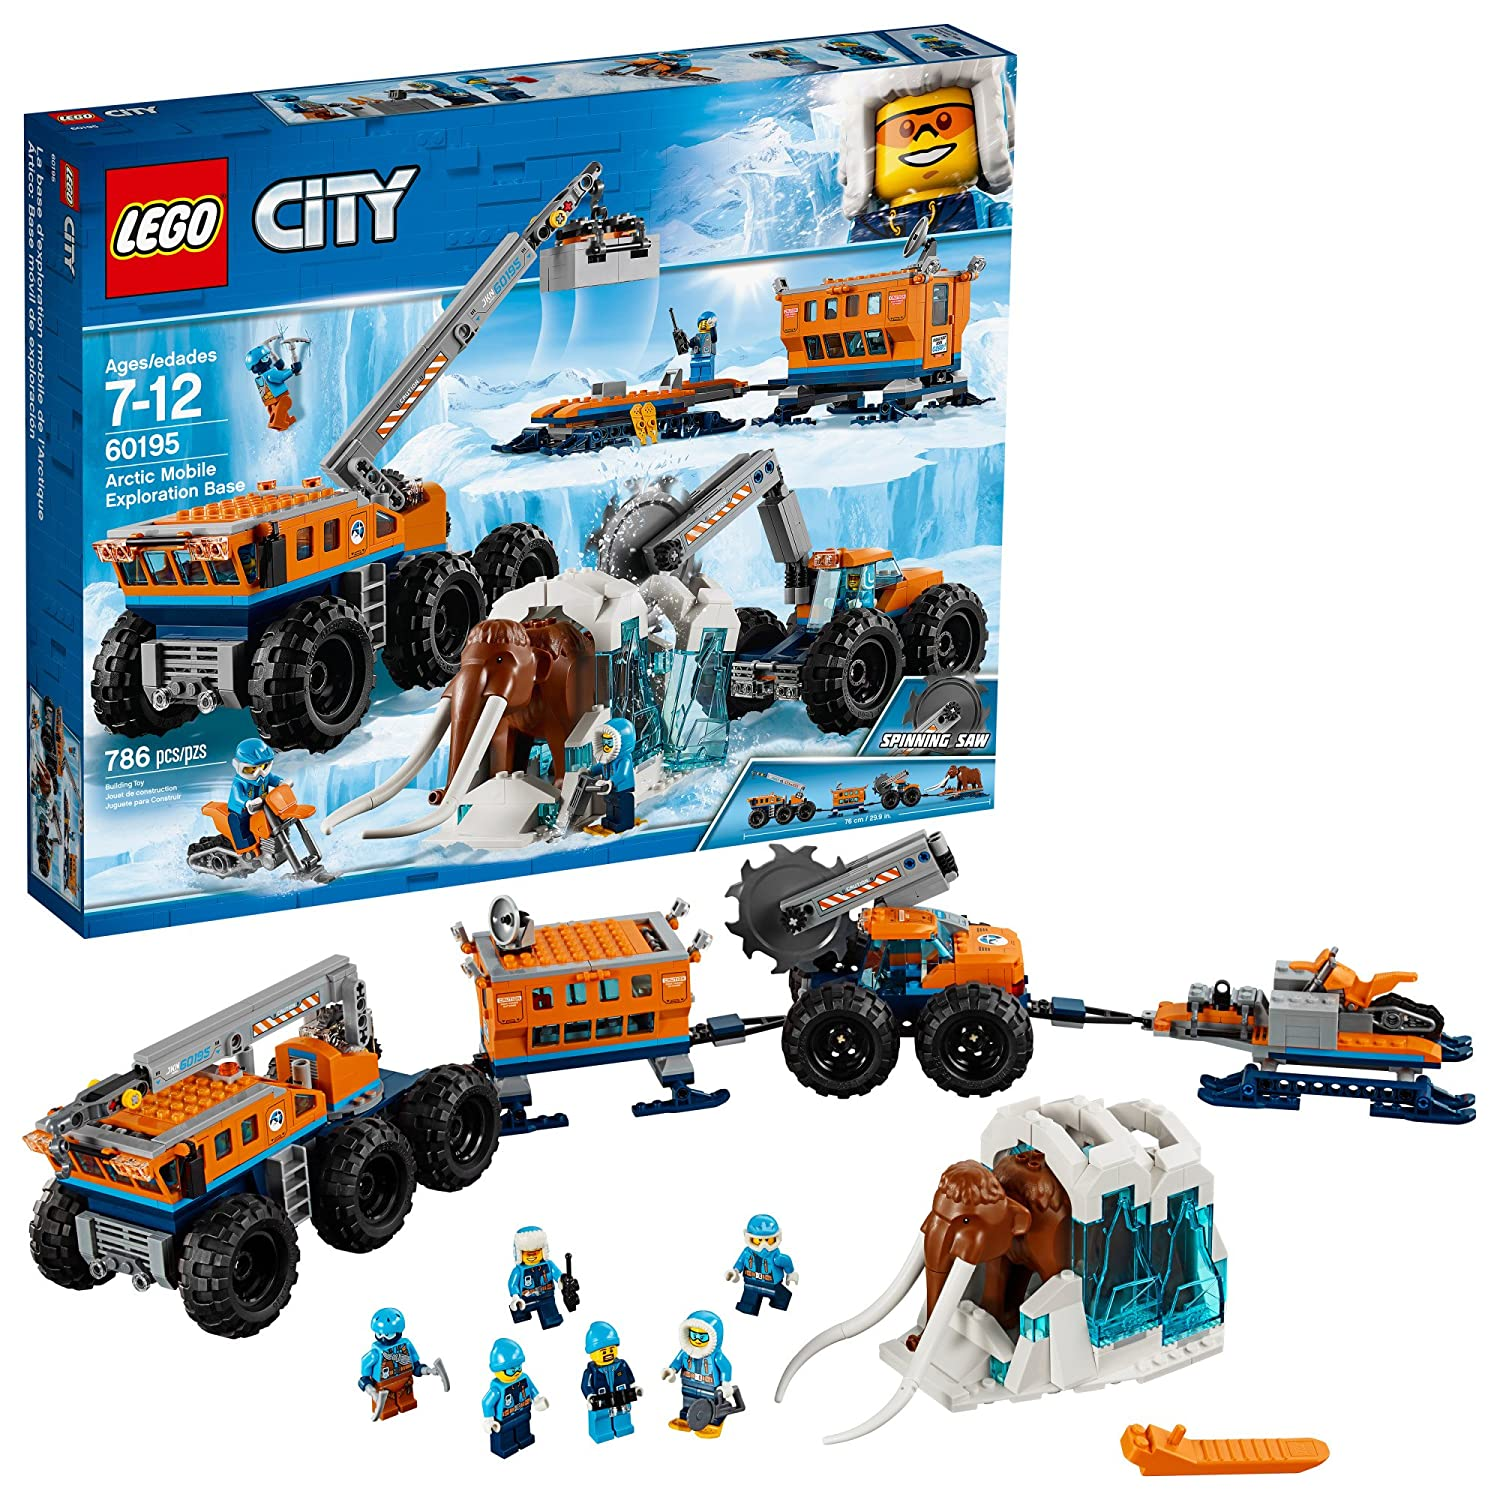 Amazoncom Lego City Arctic Mobile Exploration Base 60195 Building